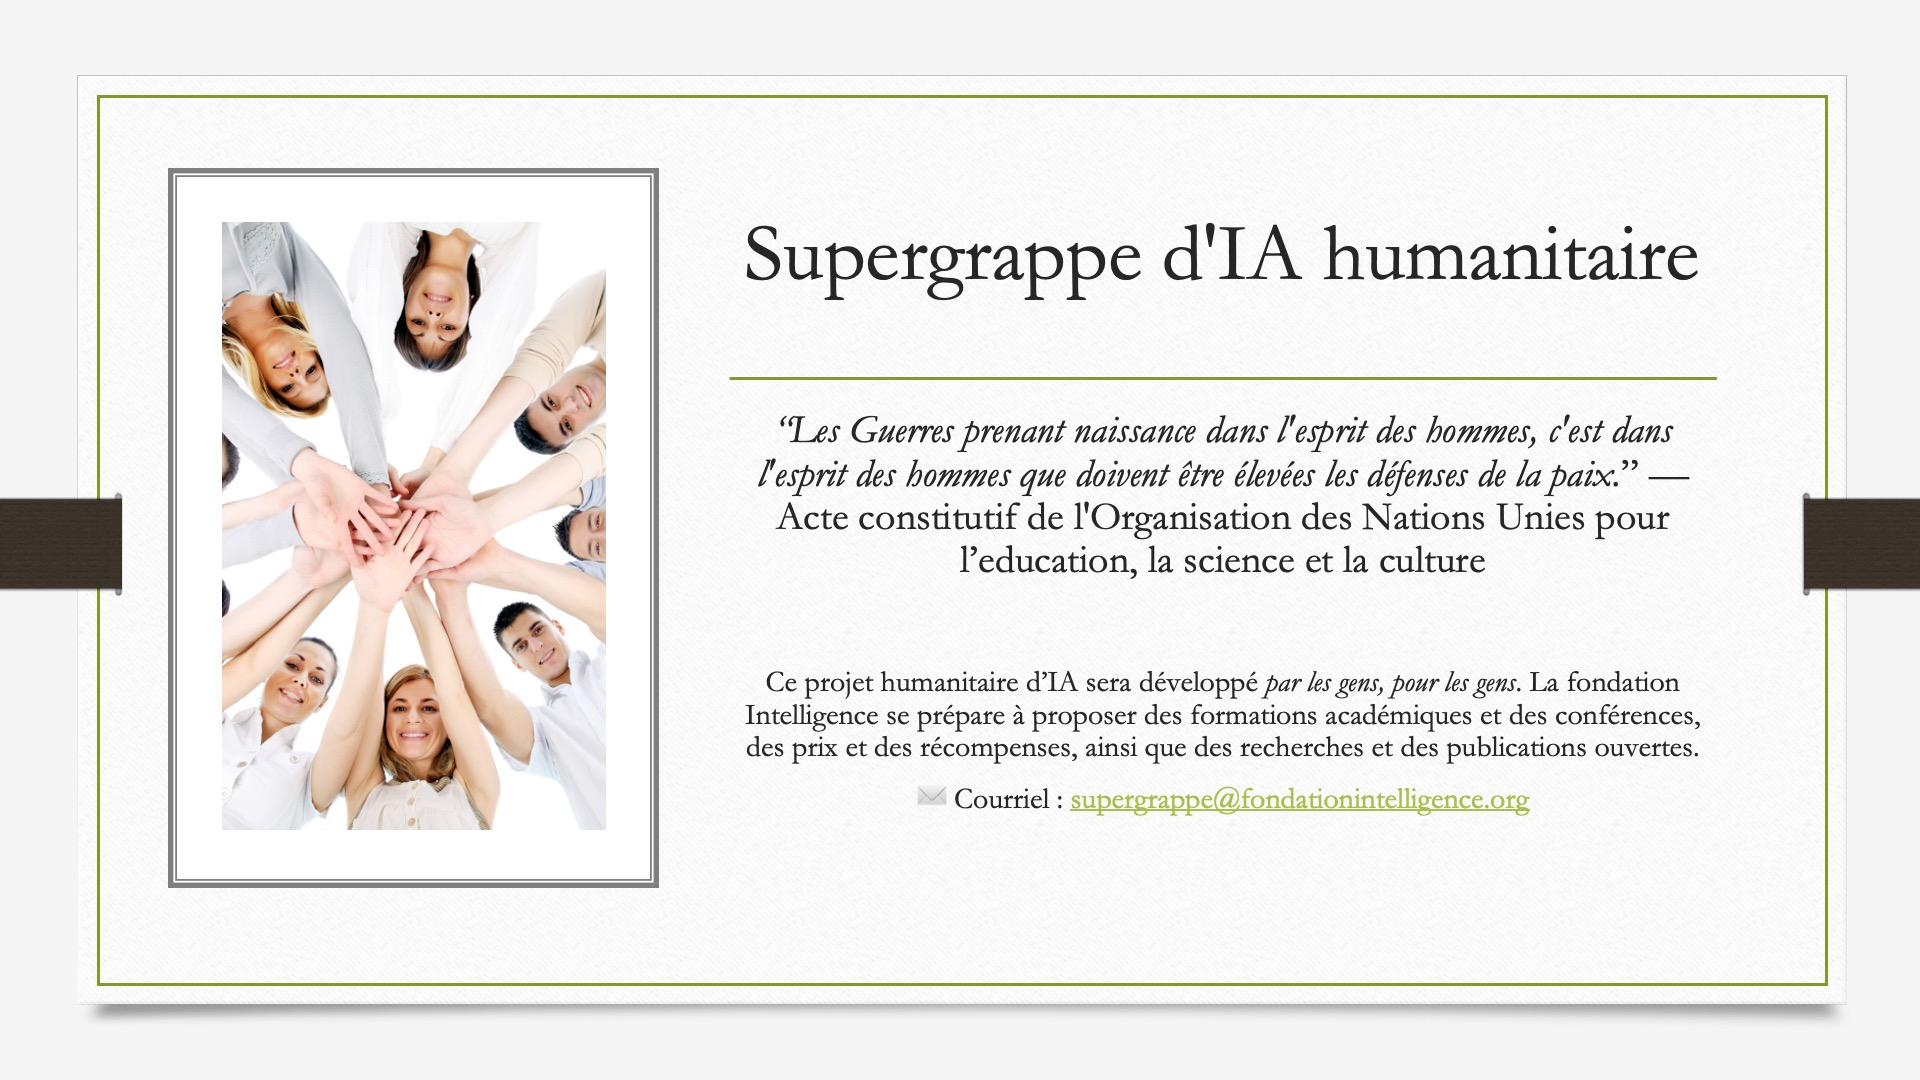 Supergrappe d'IA humanitaire